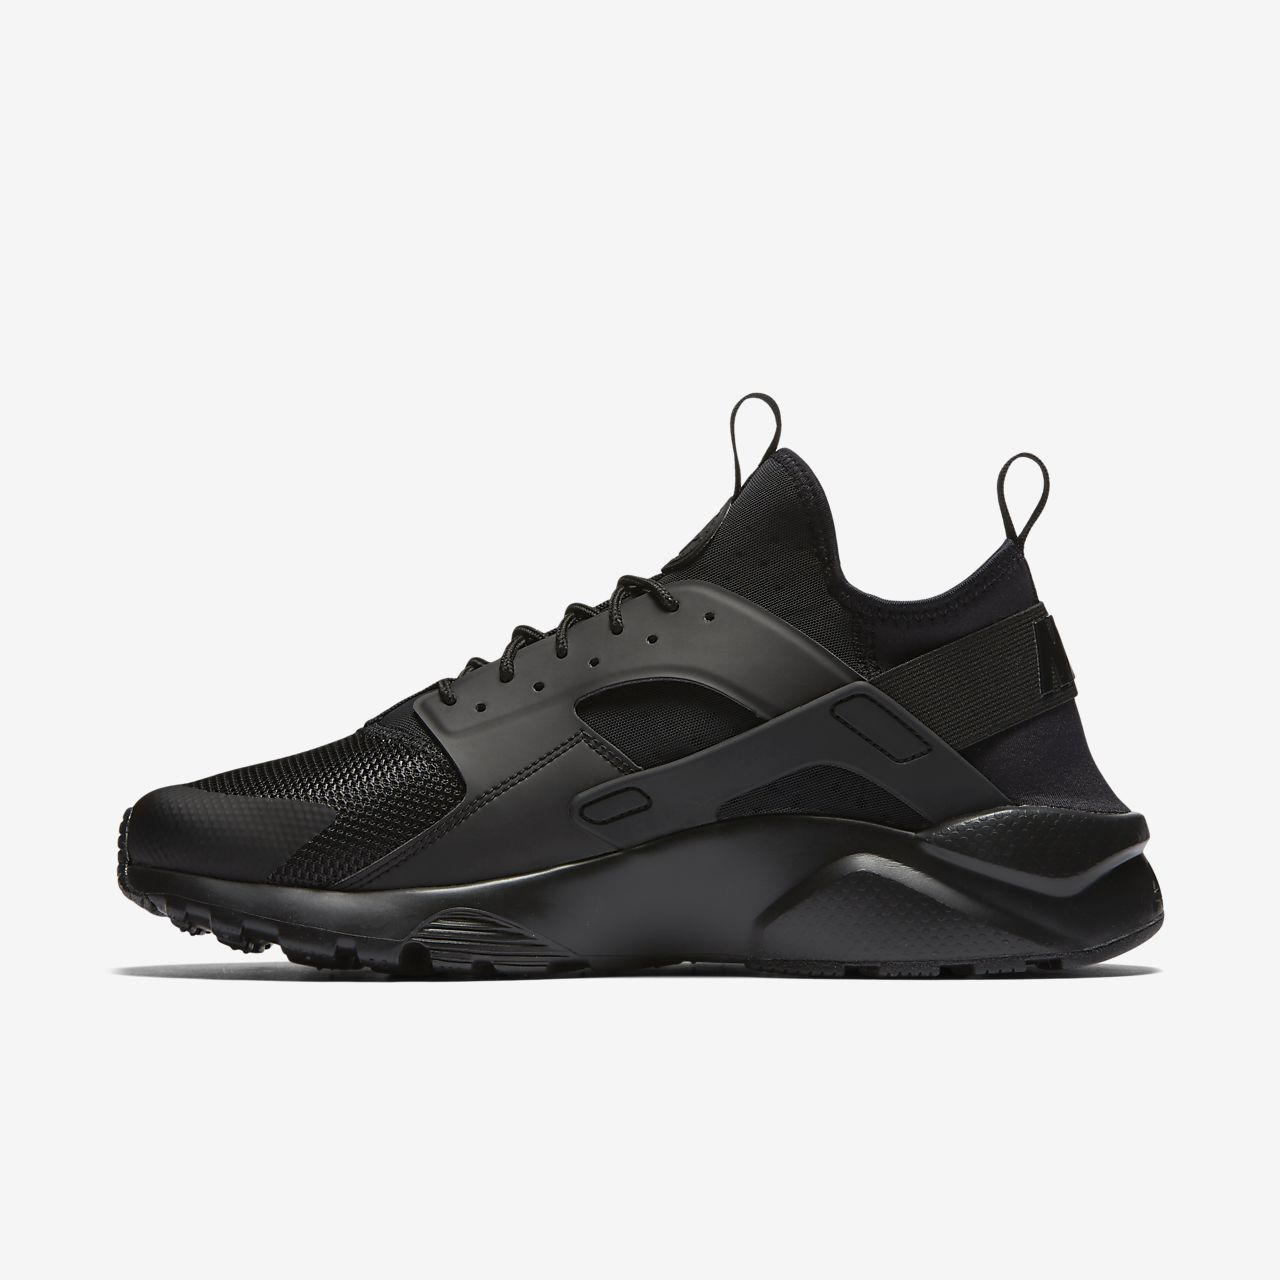 6c850a82fd55 Nike Air Huarache Ultra Men s Shoe. Nike.com DK